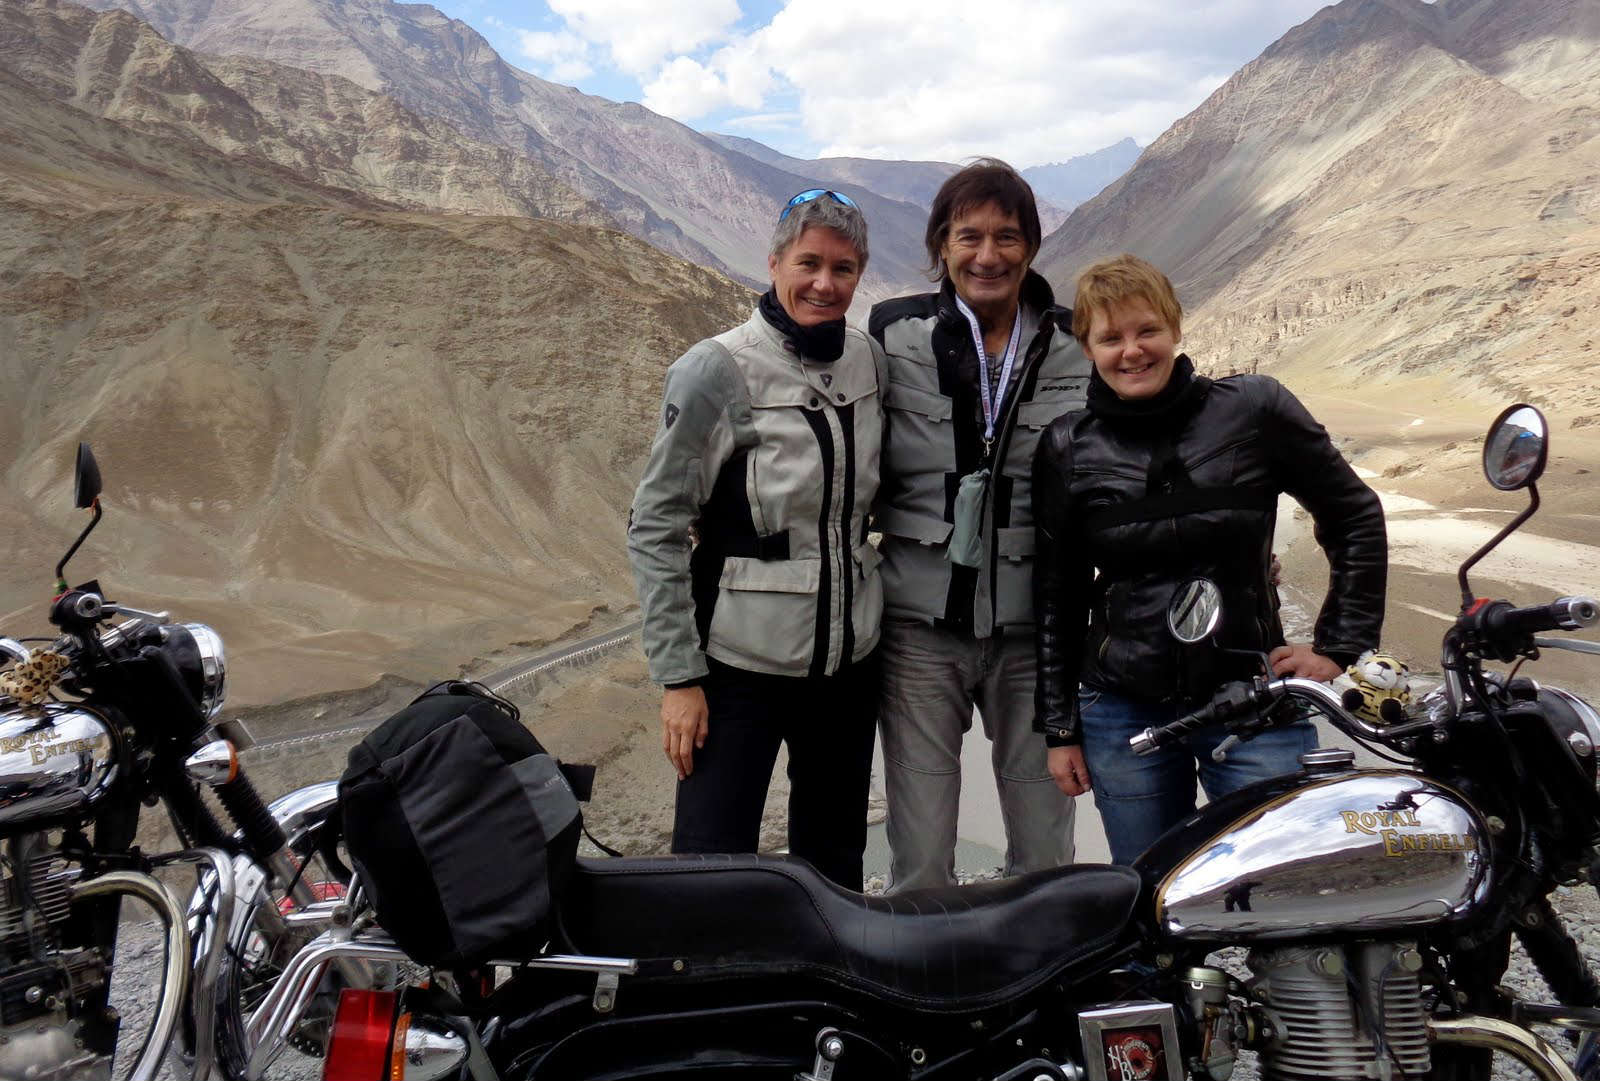 blog de voyage moto en inde himalayan bikers. Black Bedroom Furniture Sets. Home Design Ideas